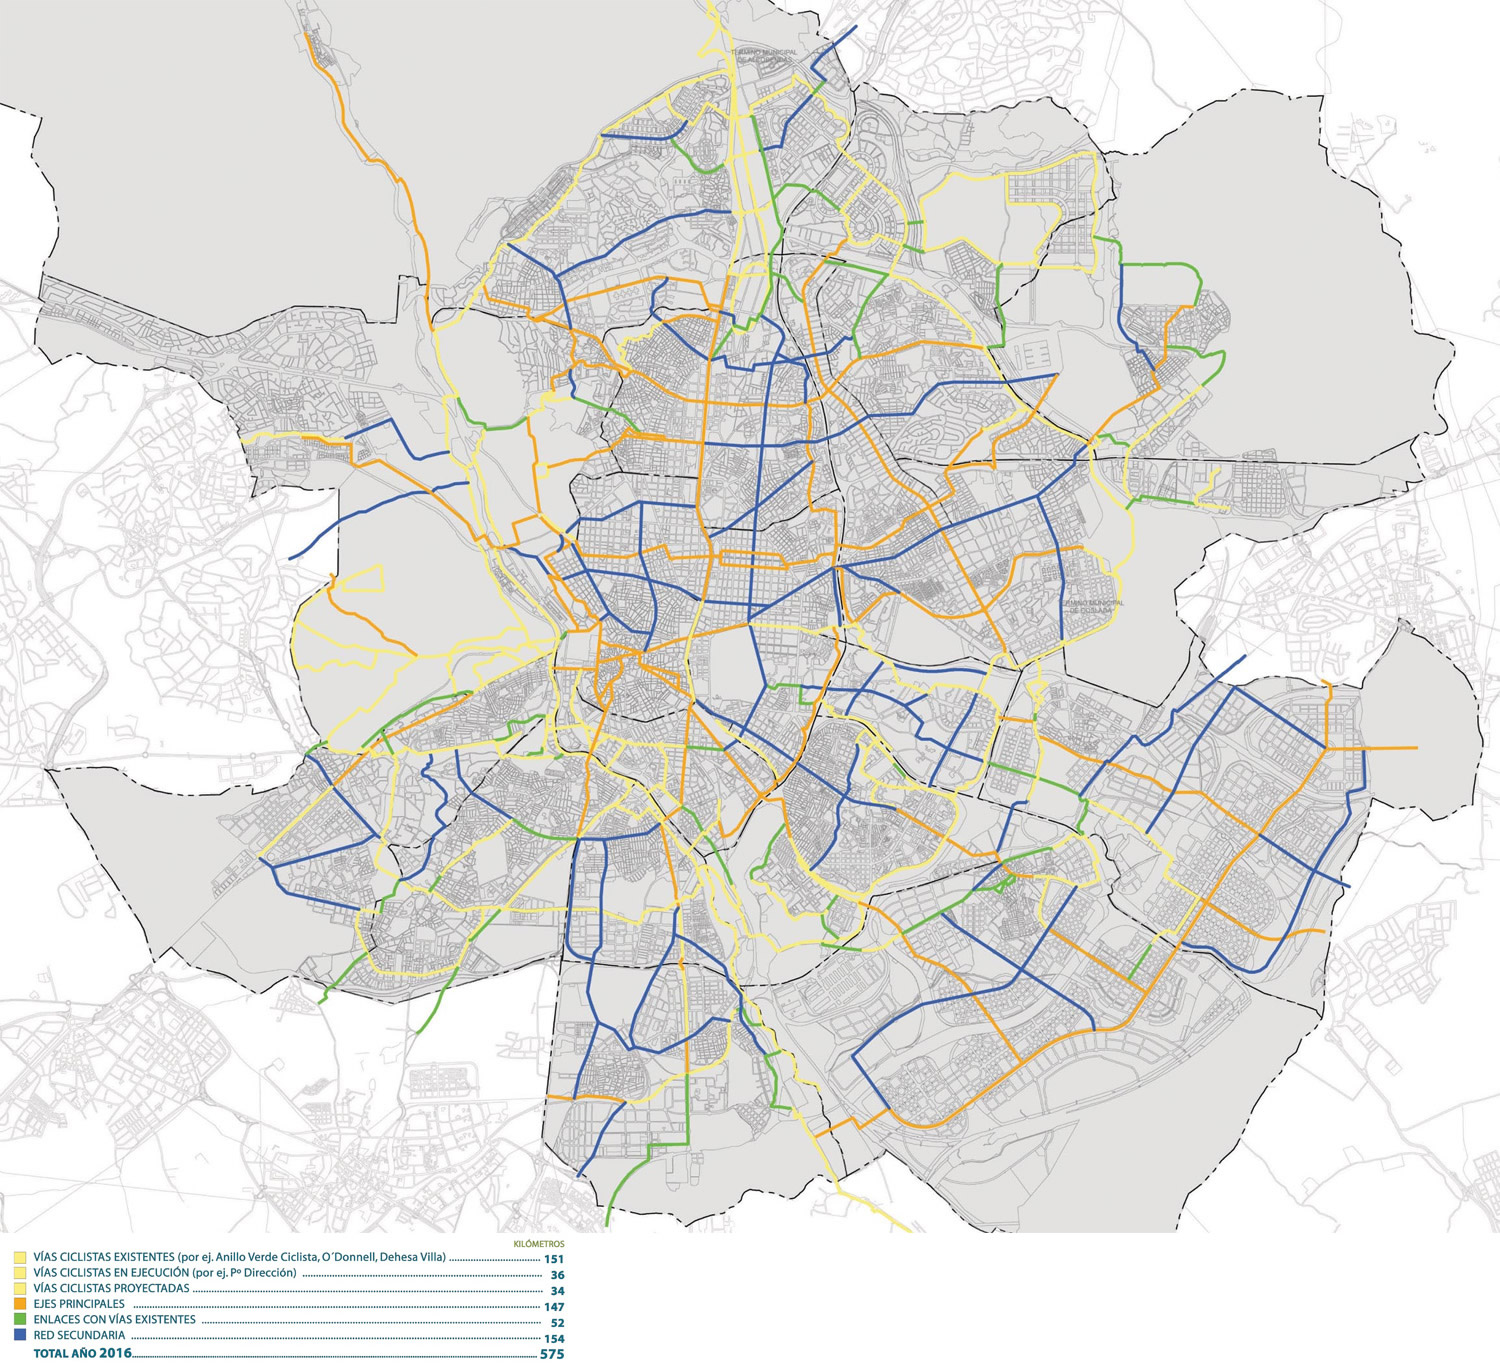 Cycle routes in the City of Madrid